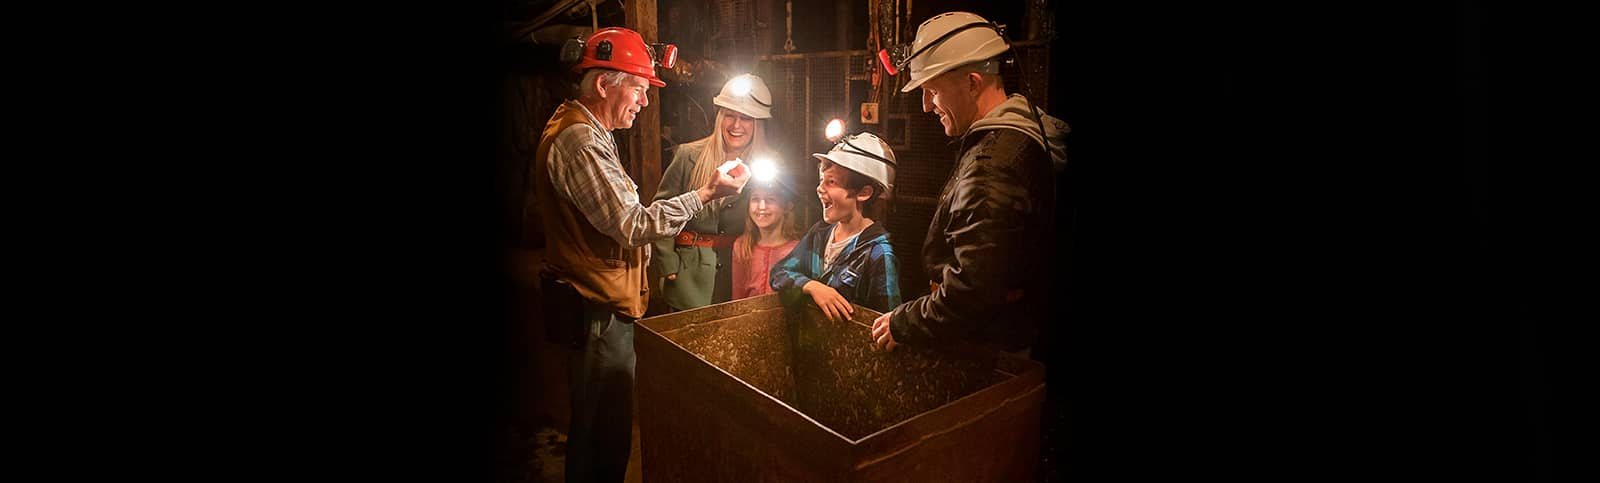 Tour Guide showing family a gold nugget underground on a Mine Experience Tour